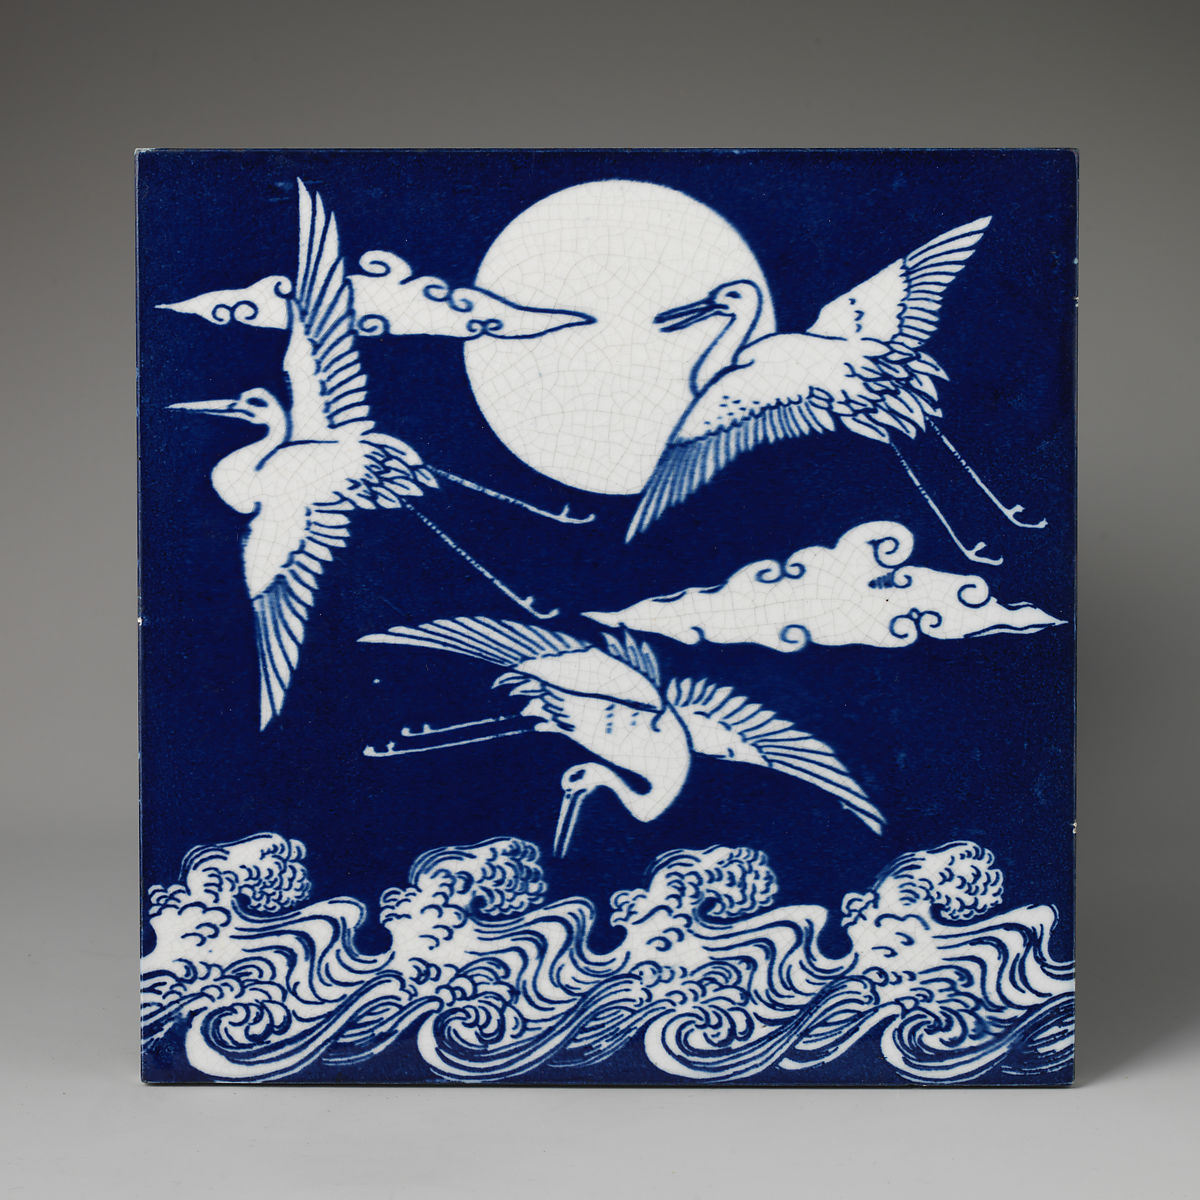 Minton(s) | Tile | British, Stoke-on-Trent, Staffordshire | The Met